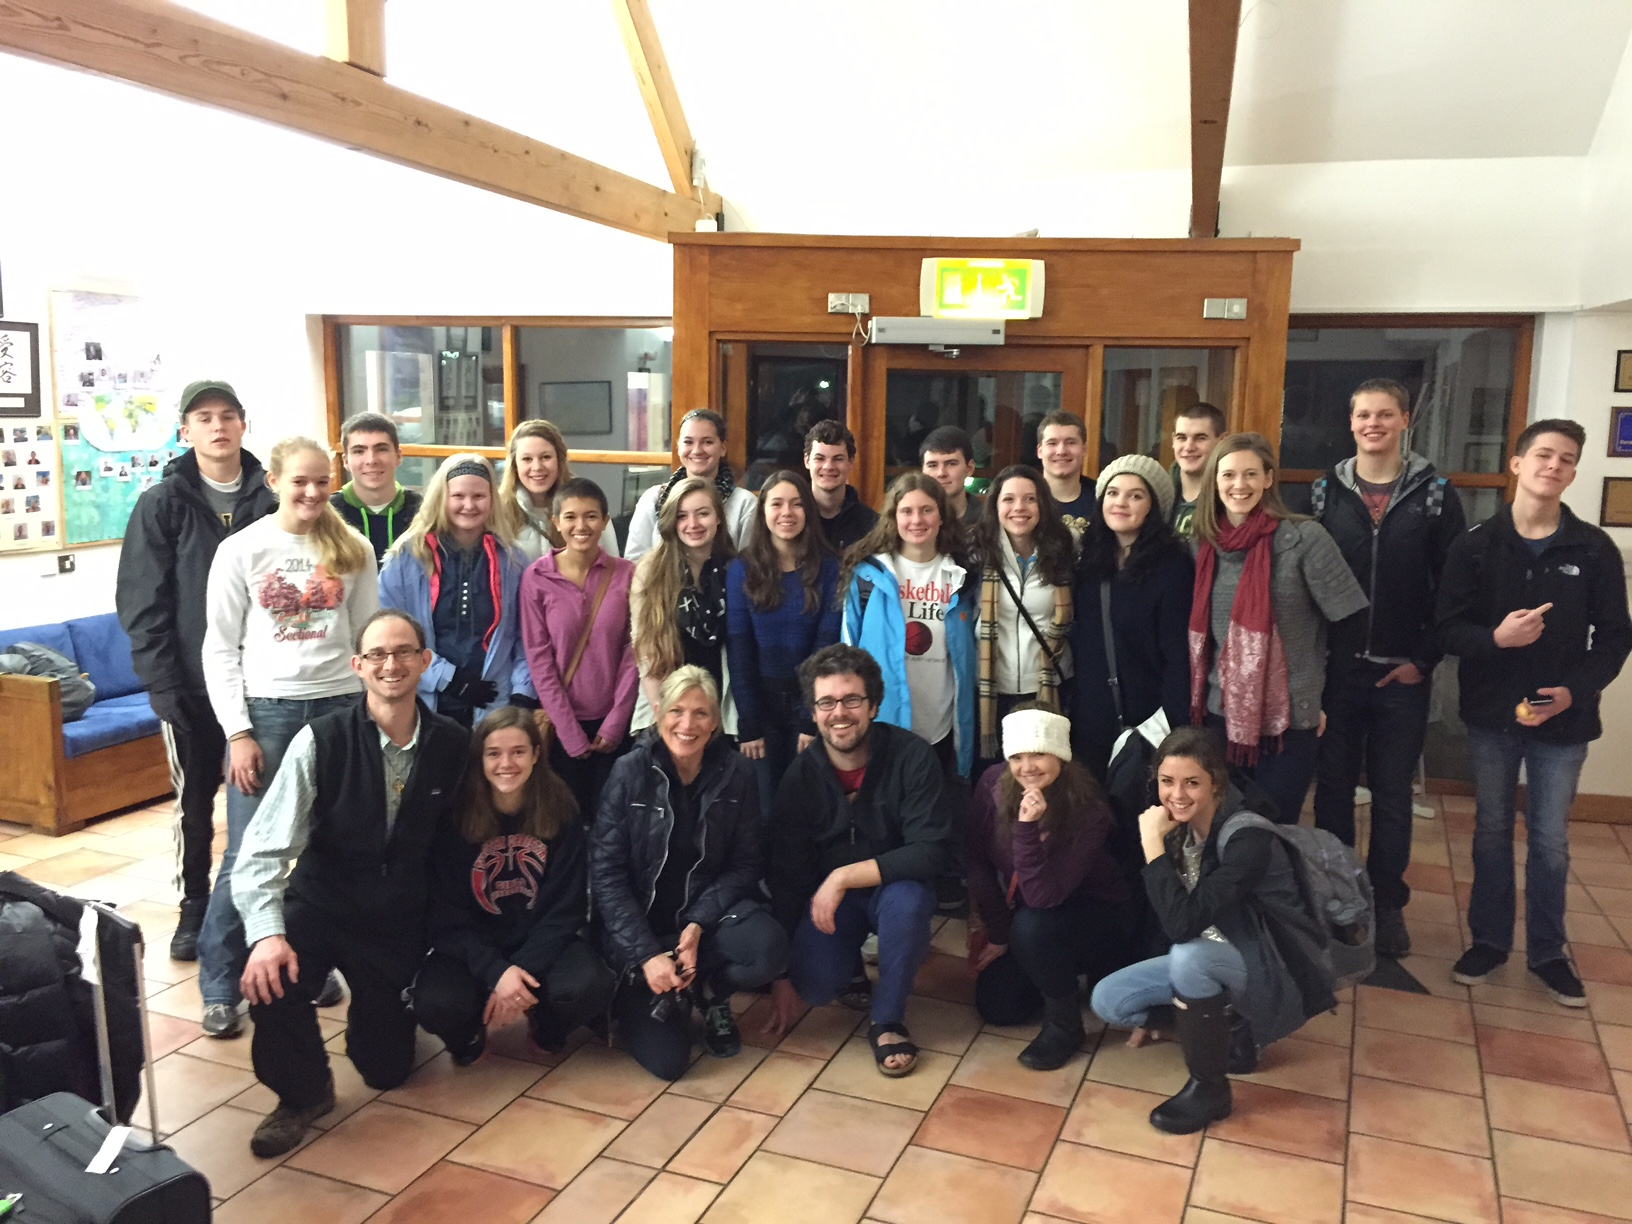 Youth Group in Ireland with Celtic Footstep